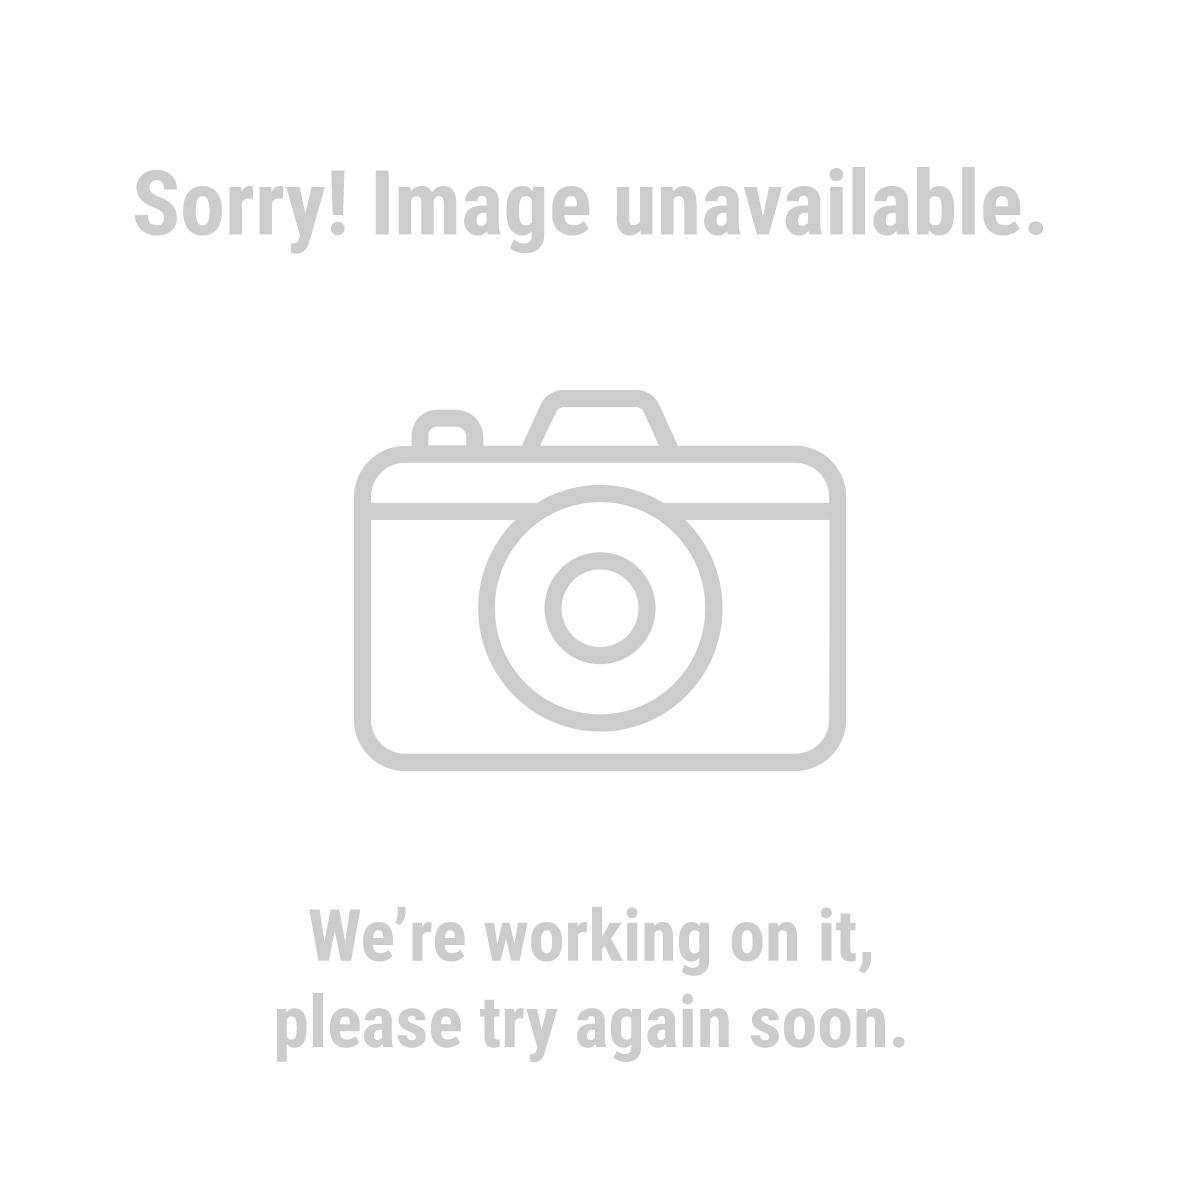 Pacific Hydrostar 69298 3/5 Horsepower Dirty Water Pump with Float Switch